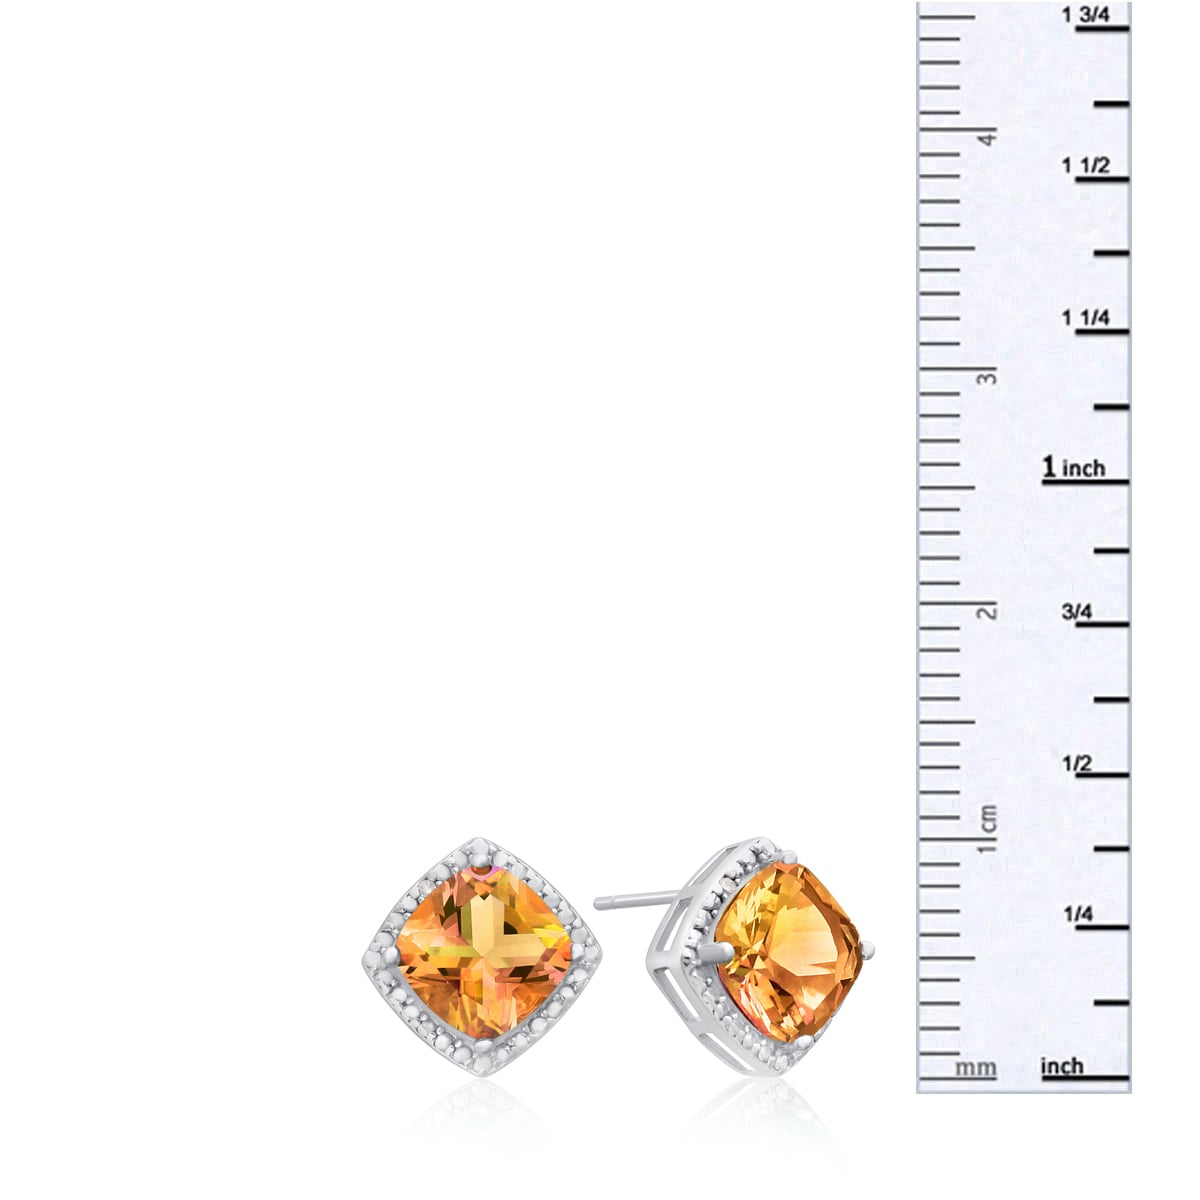 platinum sapphire earclips diamond earrings gold pin pair karat of two and centering white padparadscha